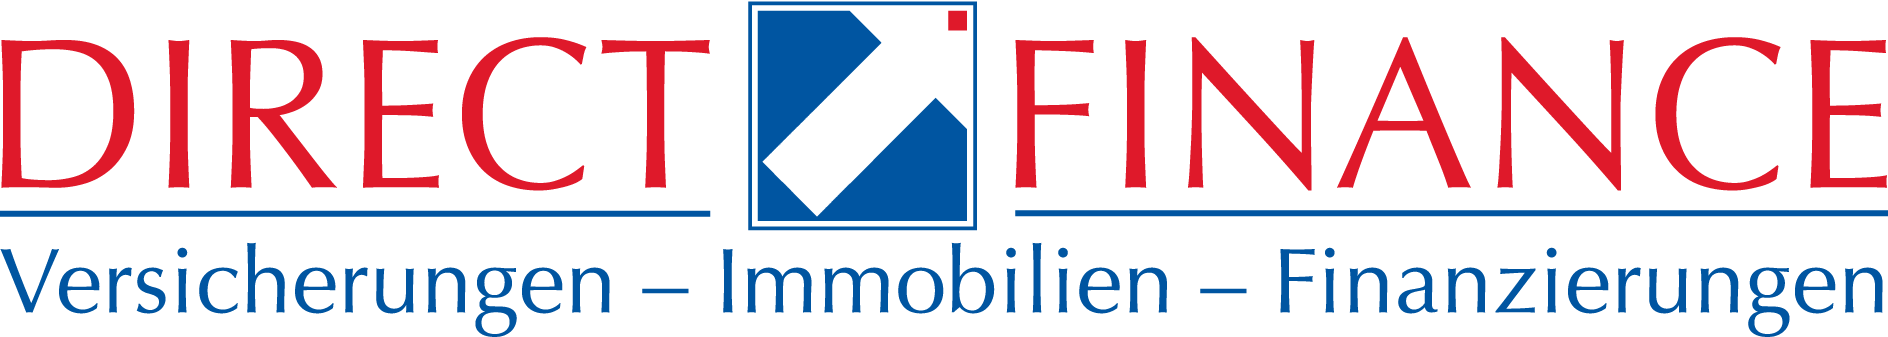 logo_direct_finance_80mm